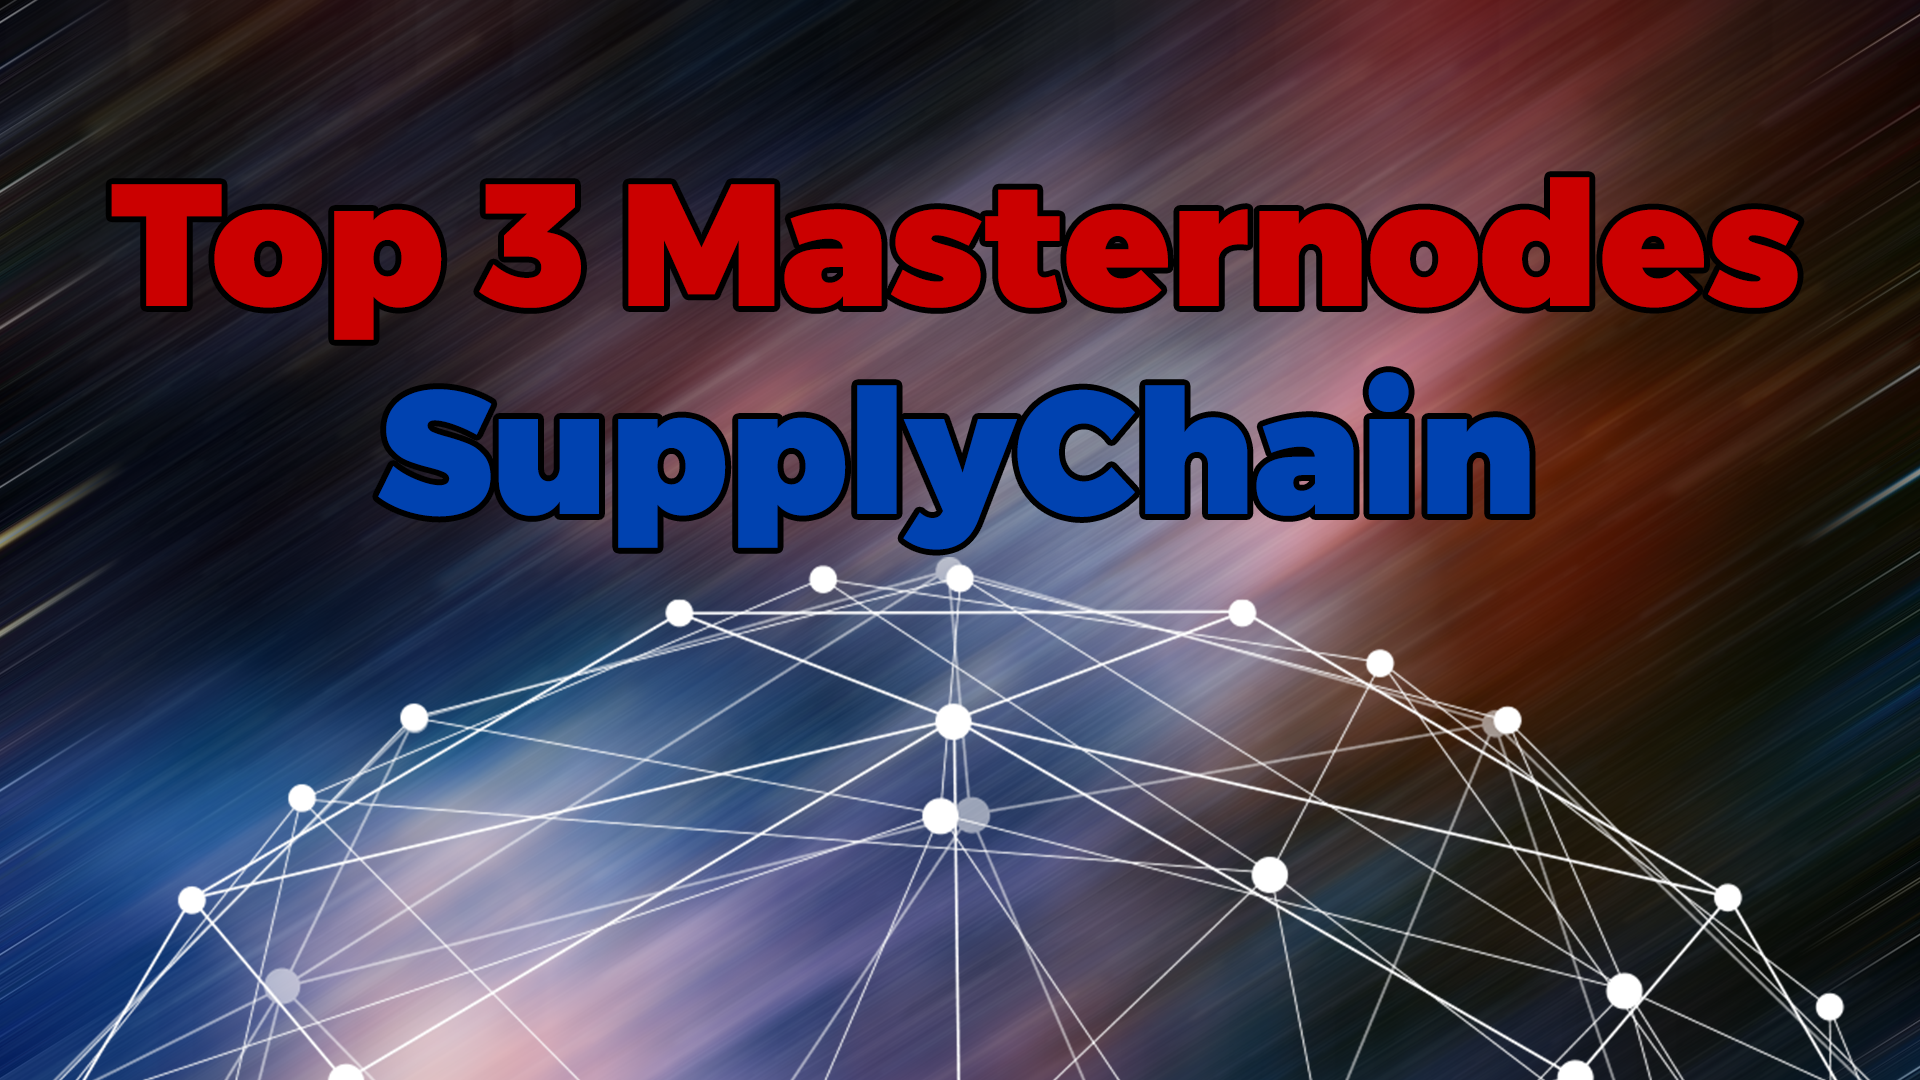 Top 3 upcoming SupplyChain Masternodes - SupplyChain Crypto